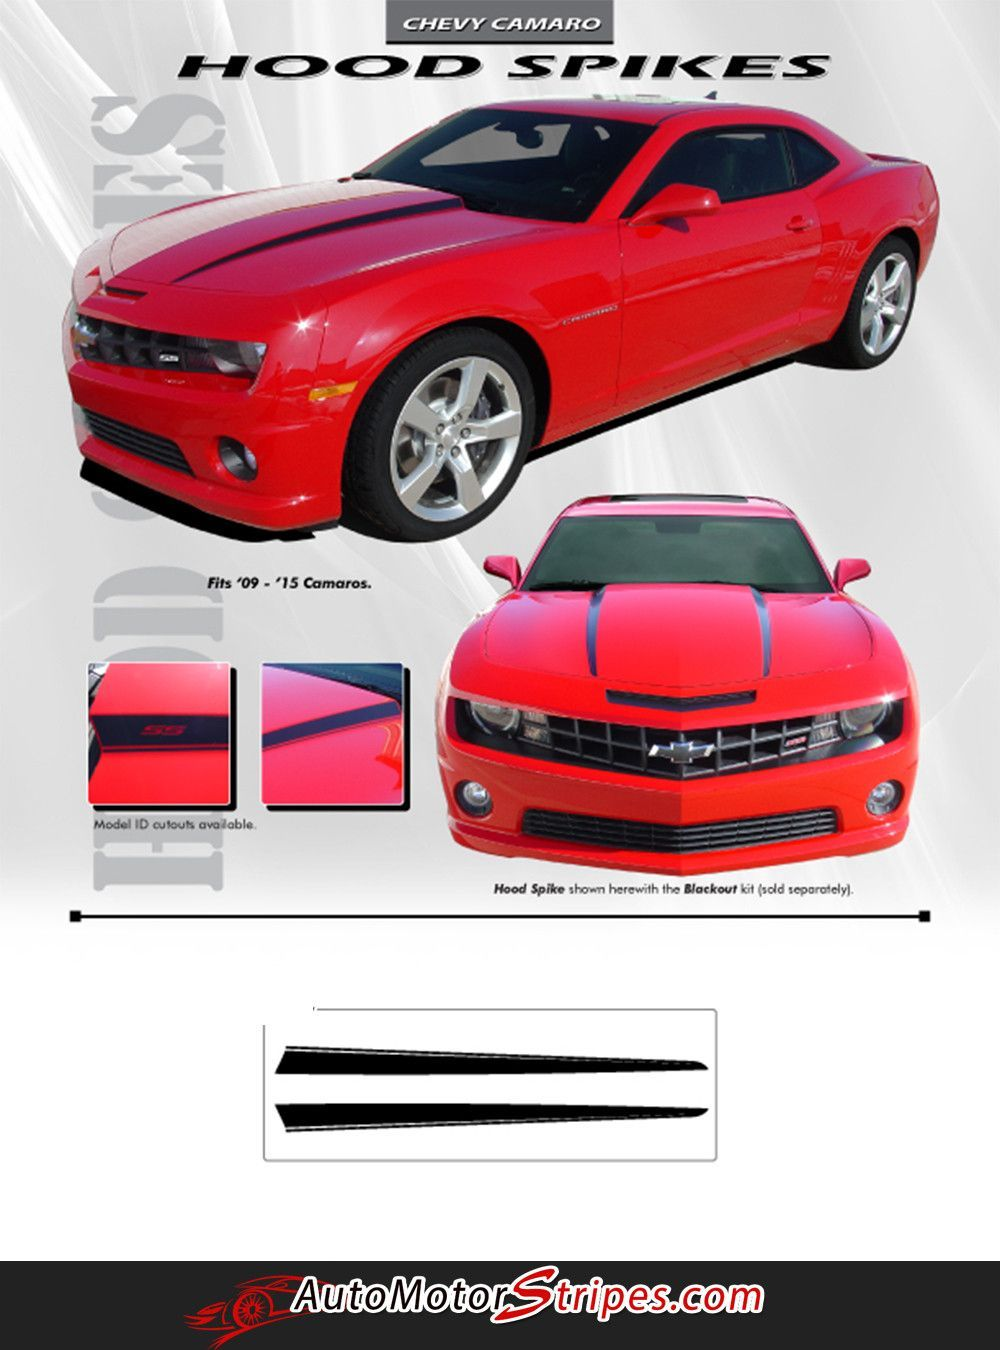 2010 2013 and 2014 2015 Chevy Camaro Hood Spears Vinyl Decal